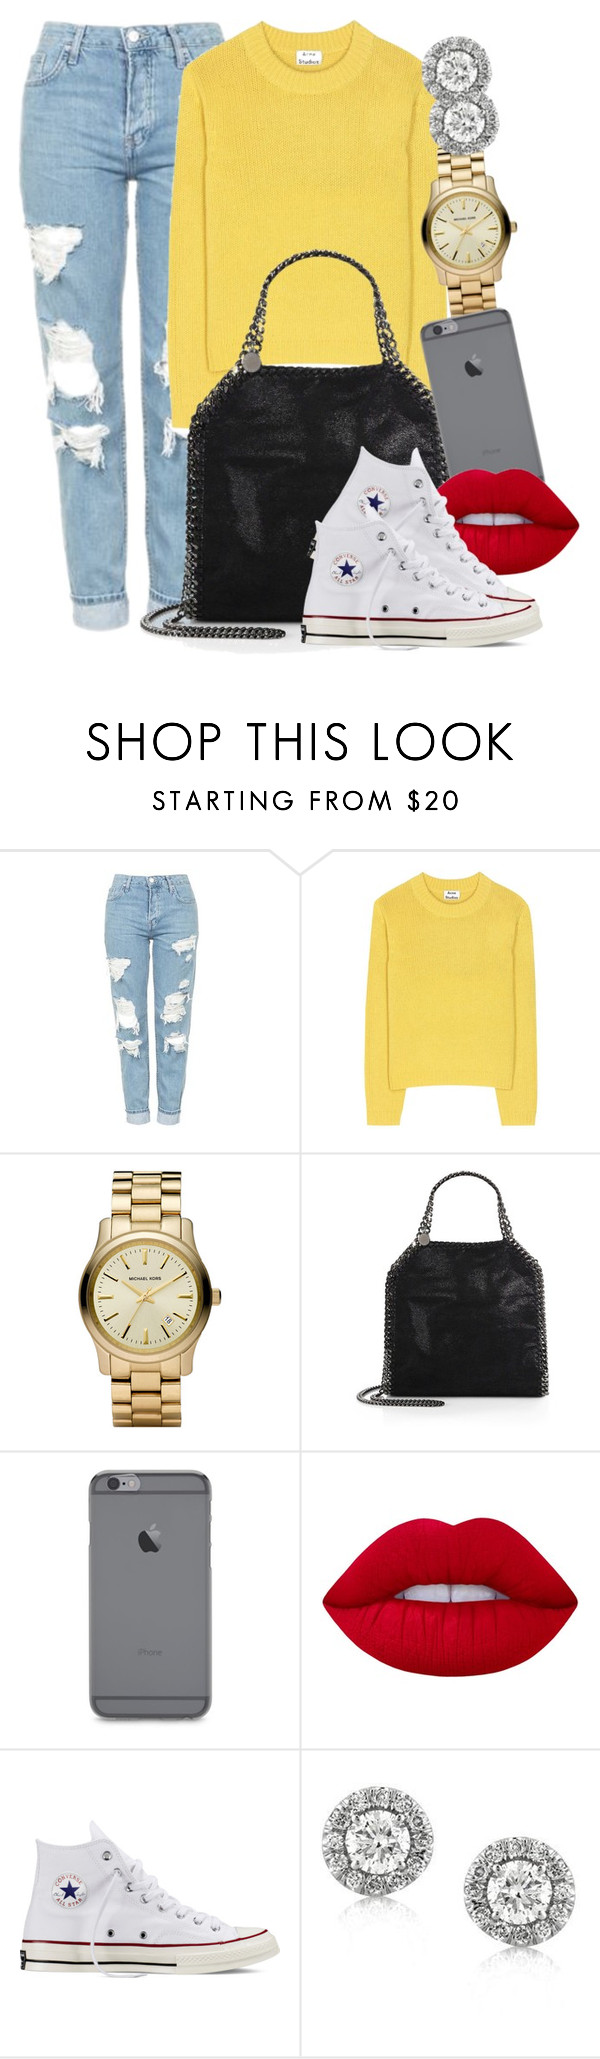 """Acne, TOPSHOP and Converse"" by camrzkn ❤ liked on Polyvore featuring Topshop, Acne Studios, MICHAEL Michael Kors, STELLA McCARTNEY, Lime Crime, Converse and Mark Broumand"